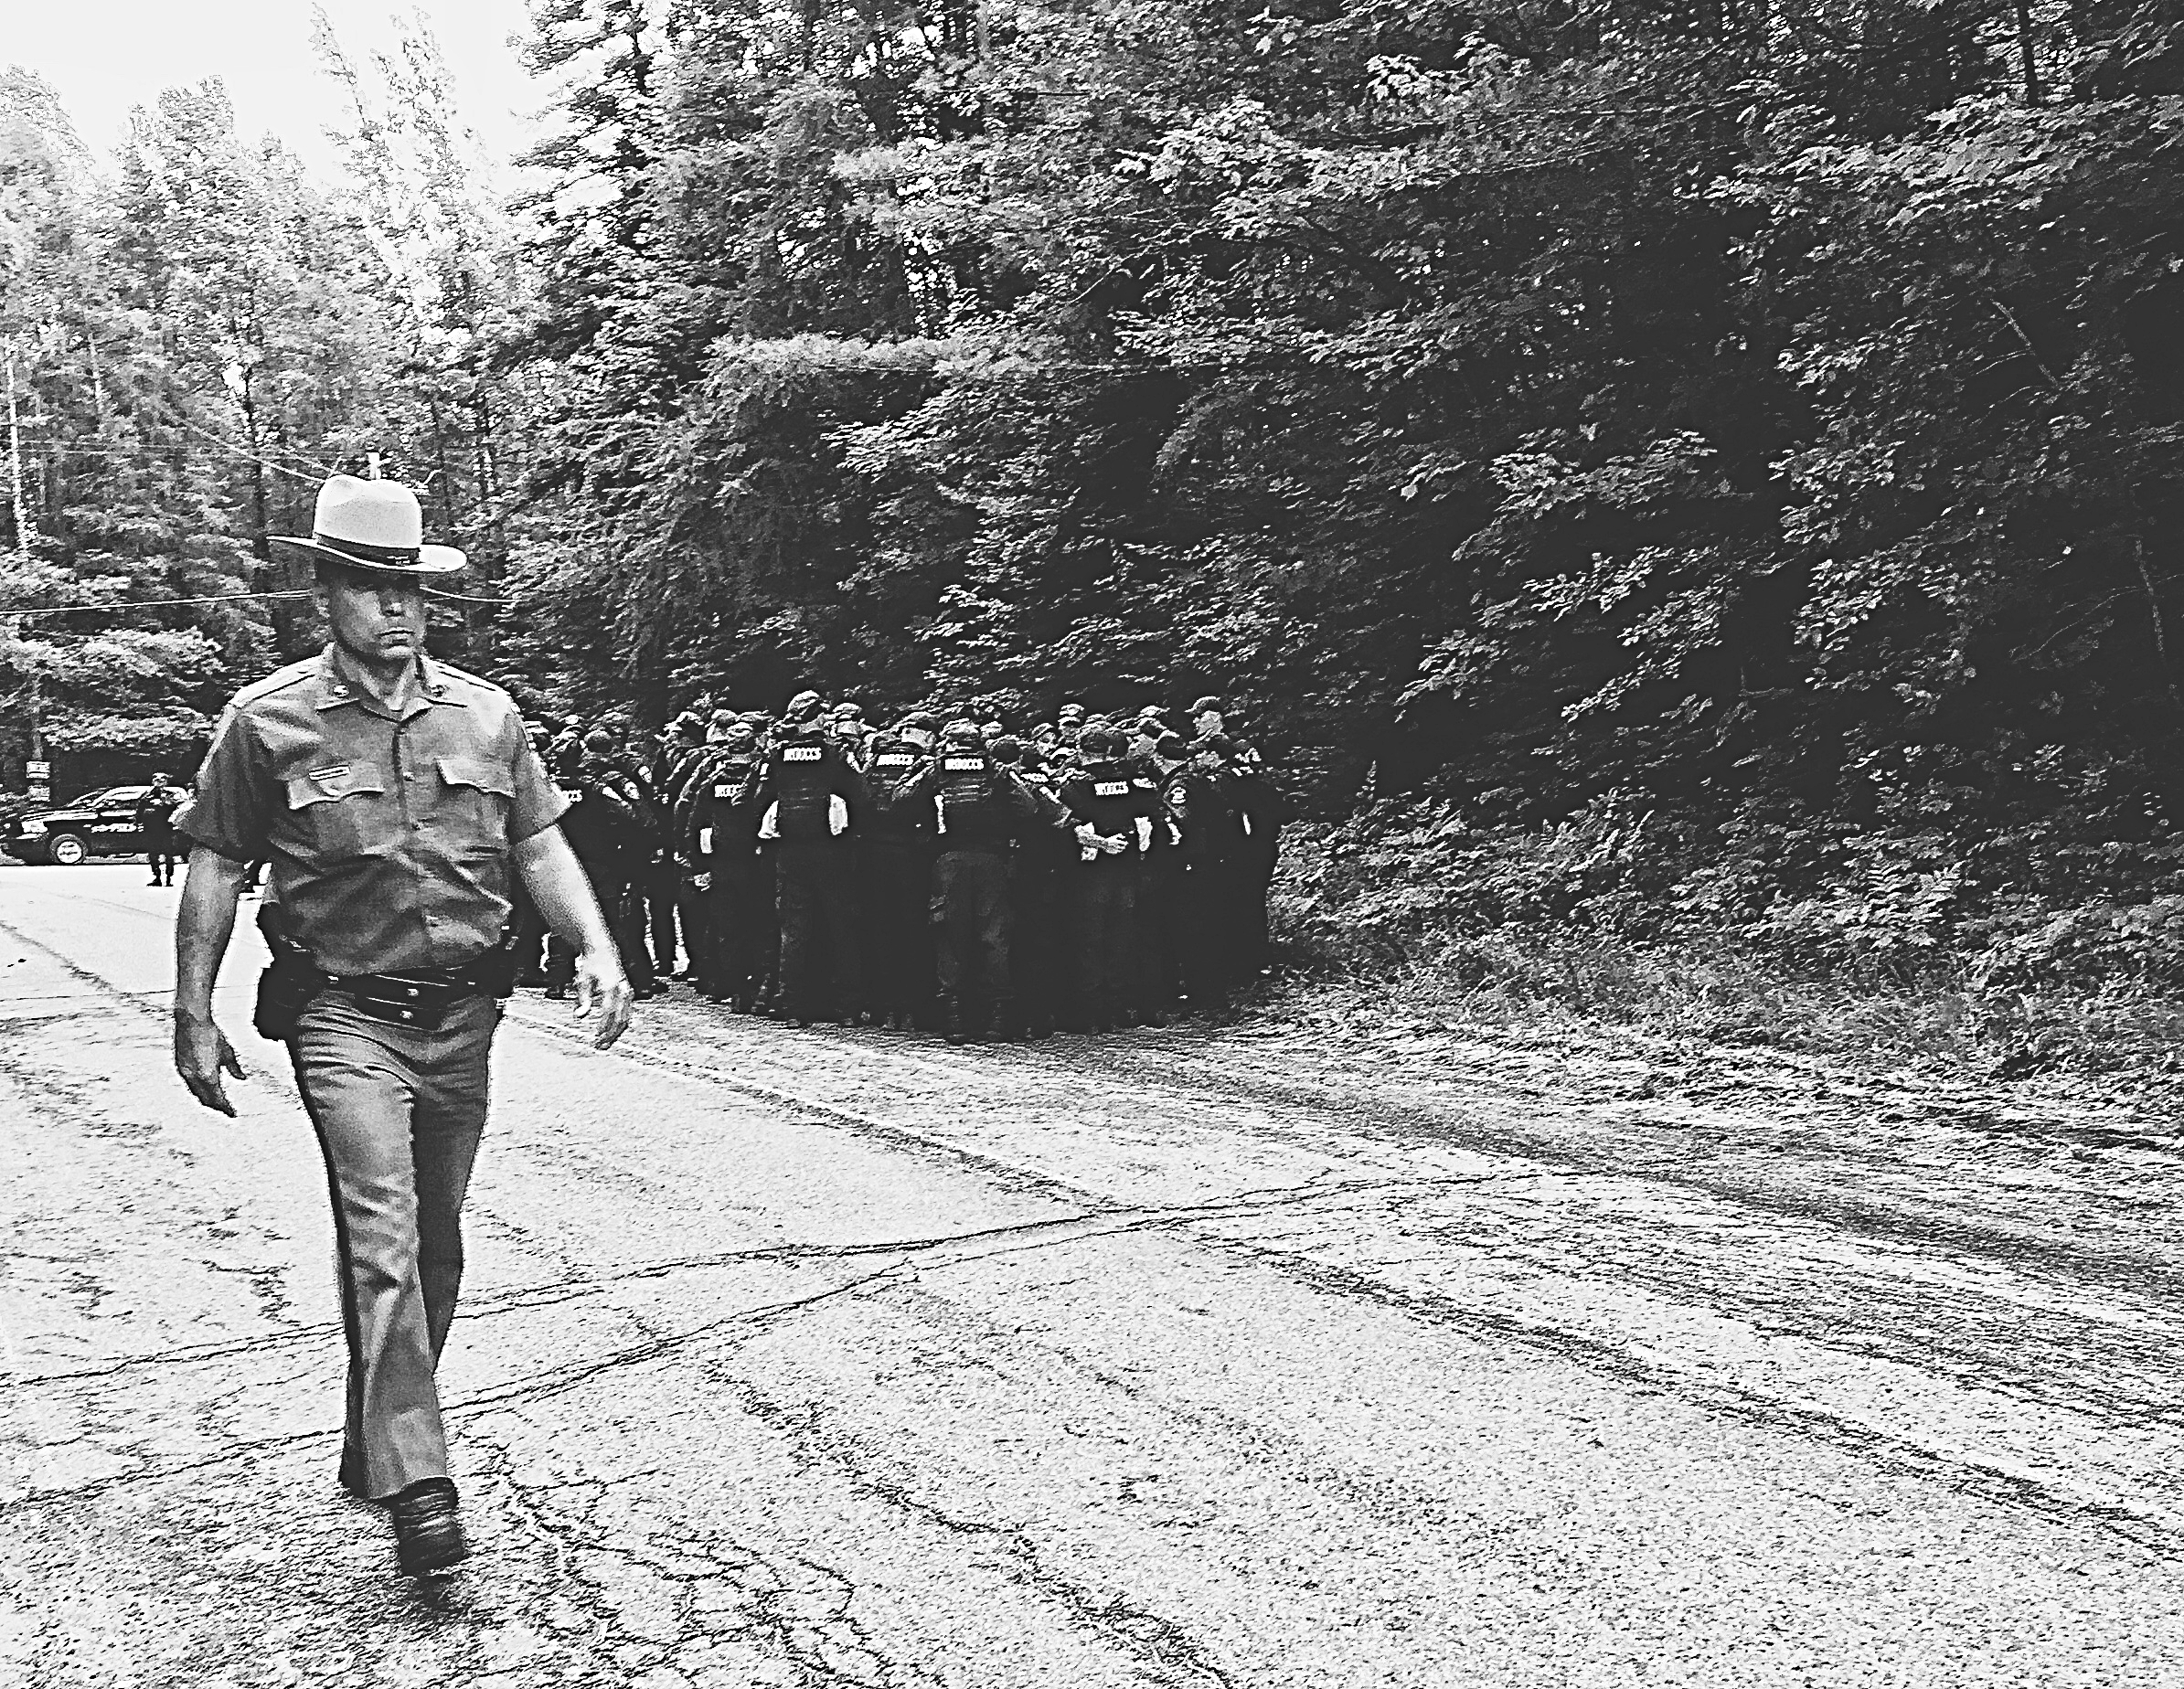 A New York State trooper walks by a group of corrections officers in Owls Head N.Y. The search for Richard Matt and David Sweat has moved to this area after DNA evidence is recovered from a nearby cabin. (Chelsia Rose Marcius/June 23, 2015)